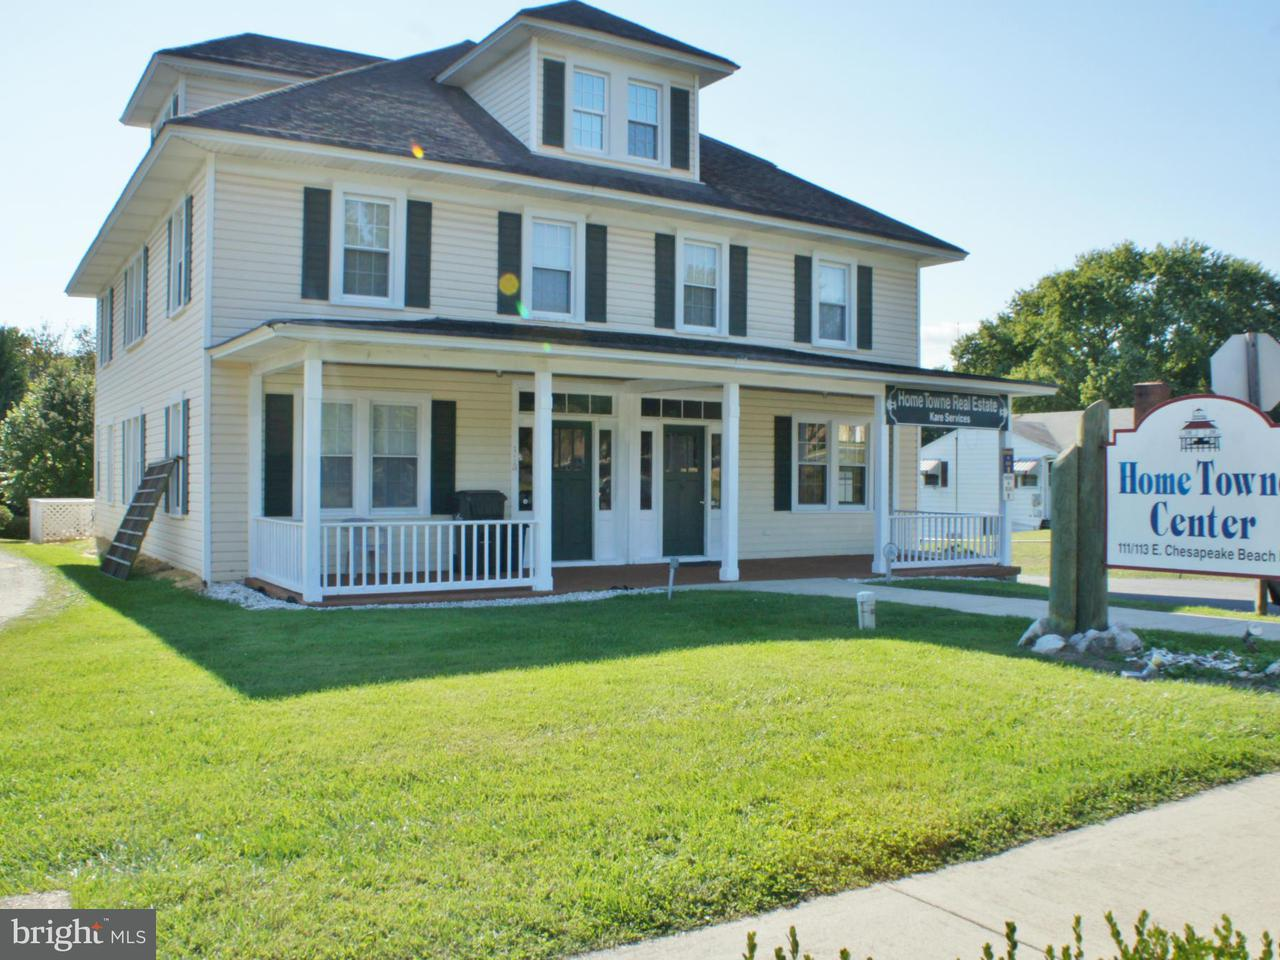 Other Residential for Rent at 113 Chesapeake Beach Rd Owings, Maryland 20736 United States